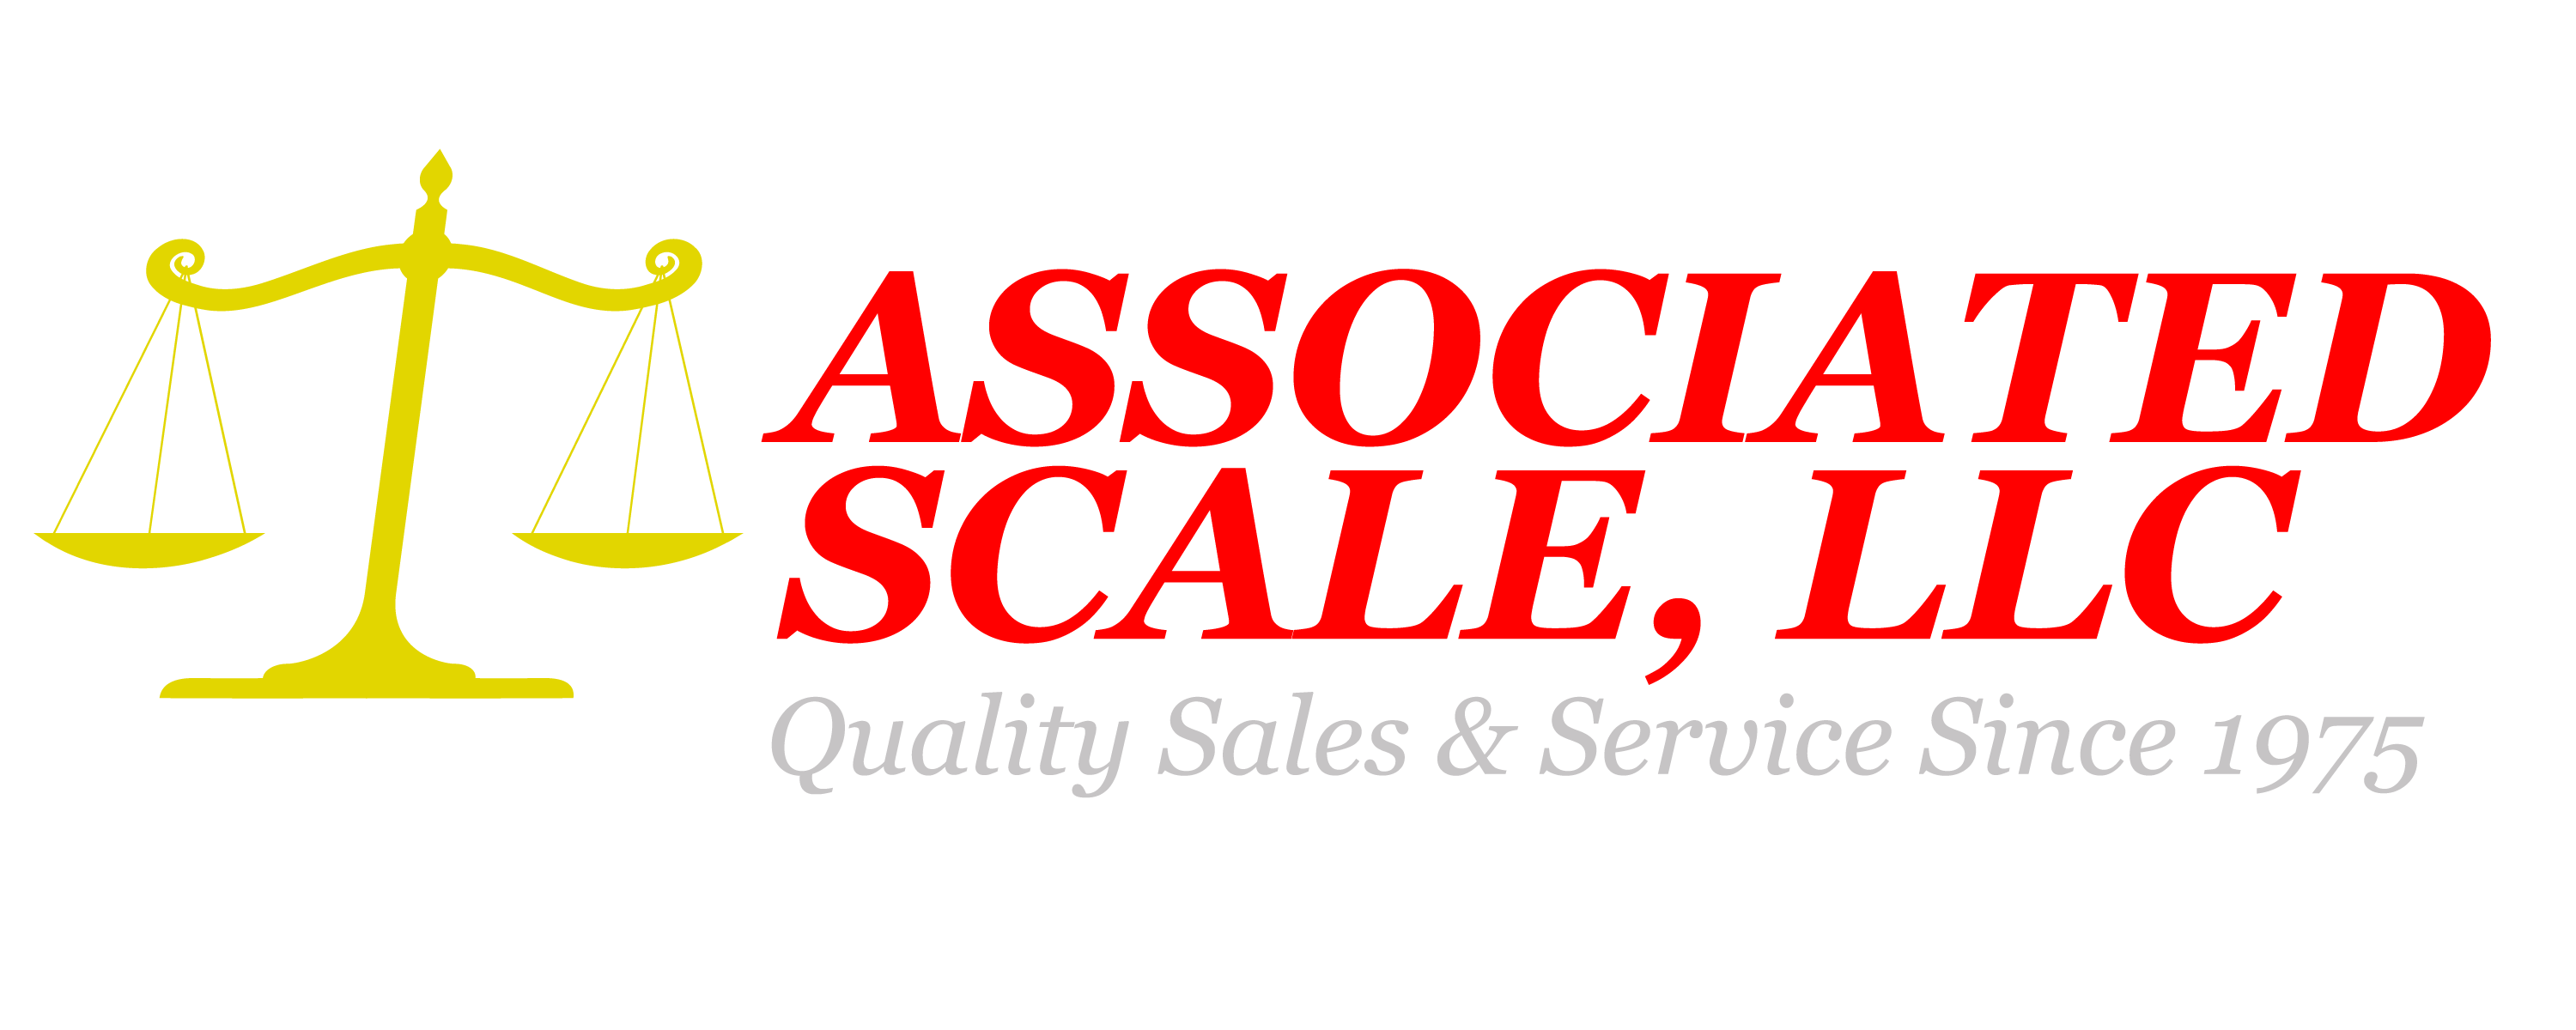 Associated Scale